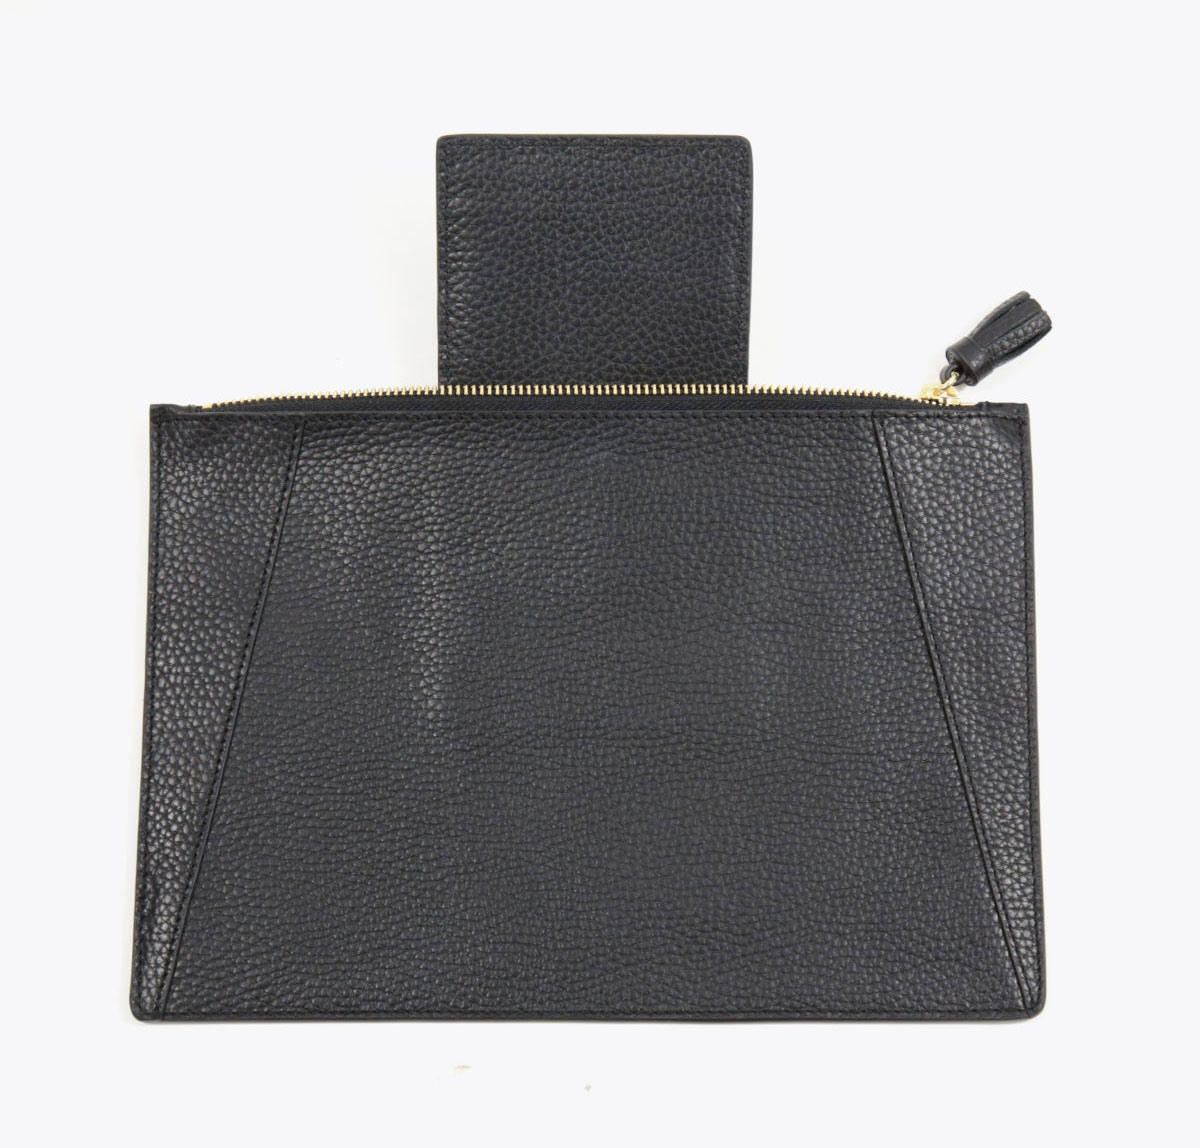 Neely Chloe Flat Clutch Pebble Black with card organizer